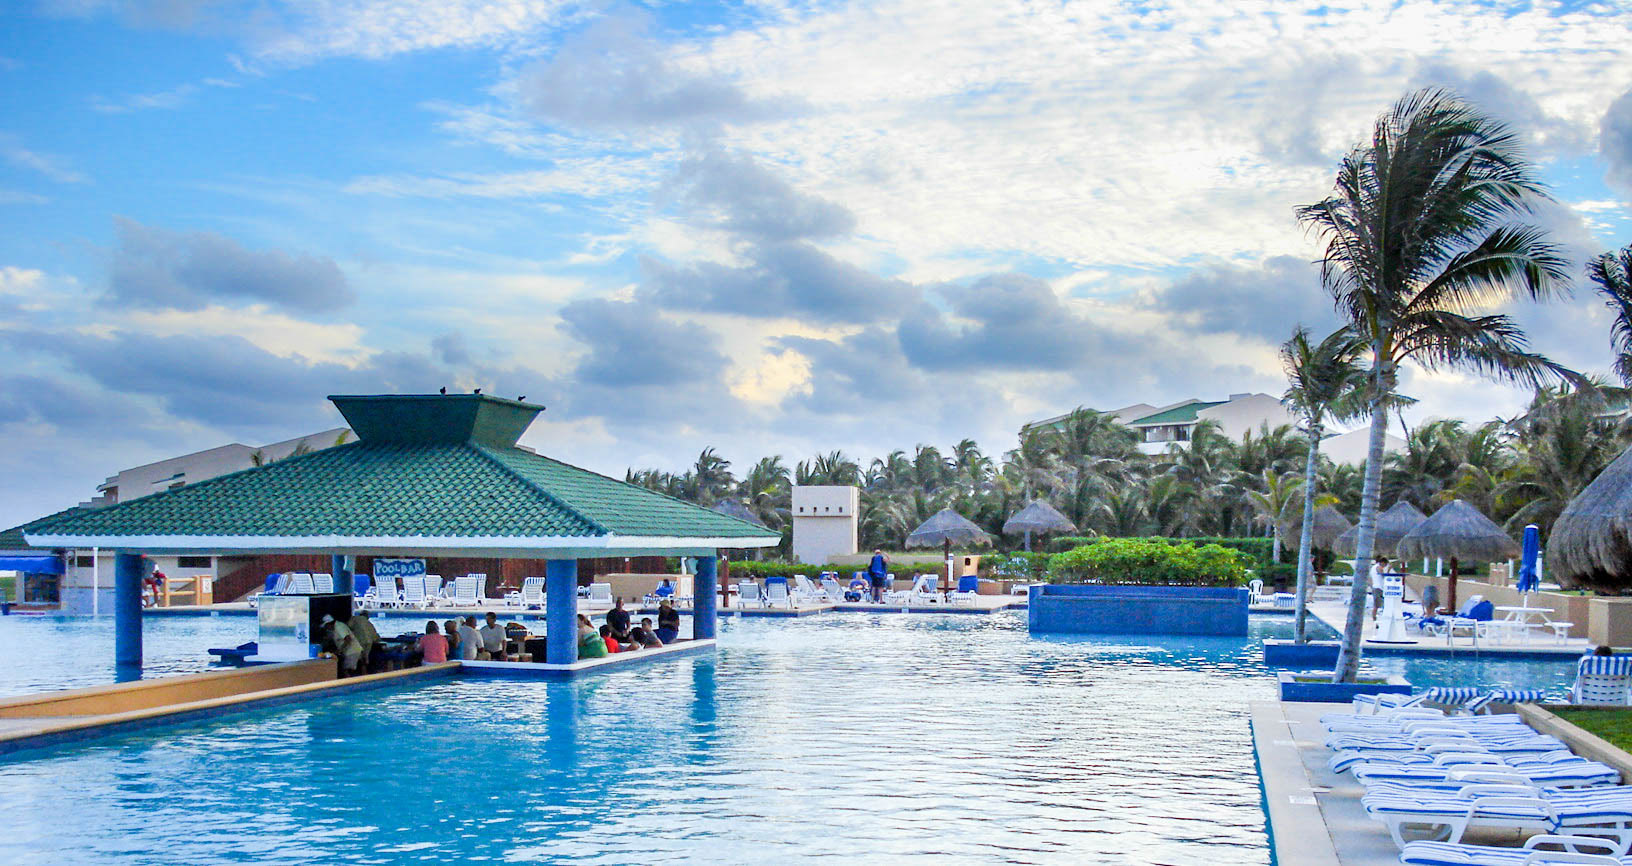 Pool Bar in Cancun, Mexico image - Free stock photo - Public ...